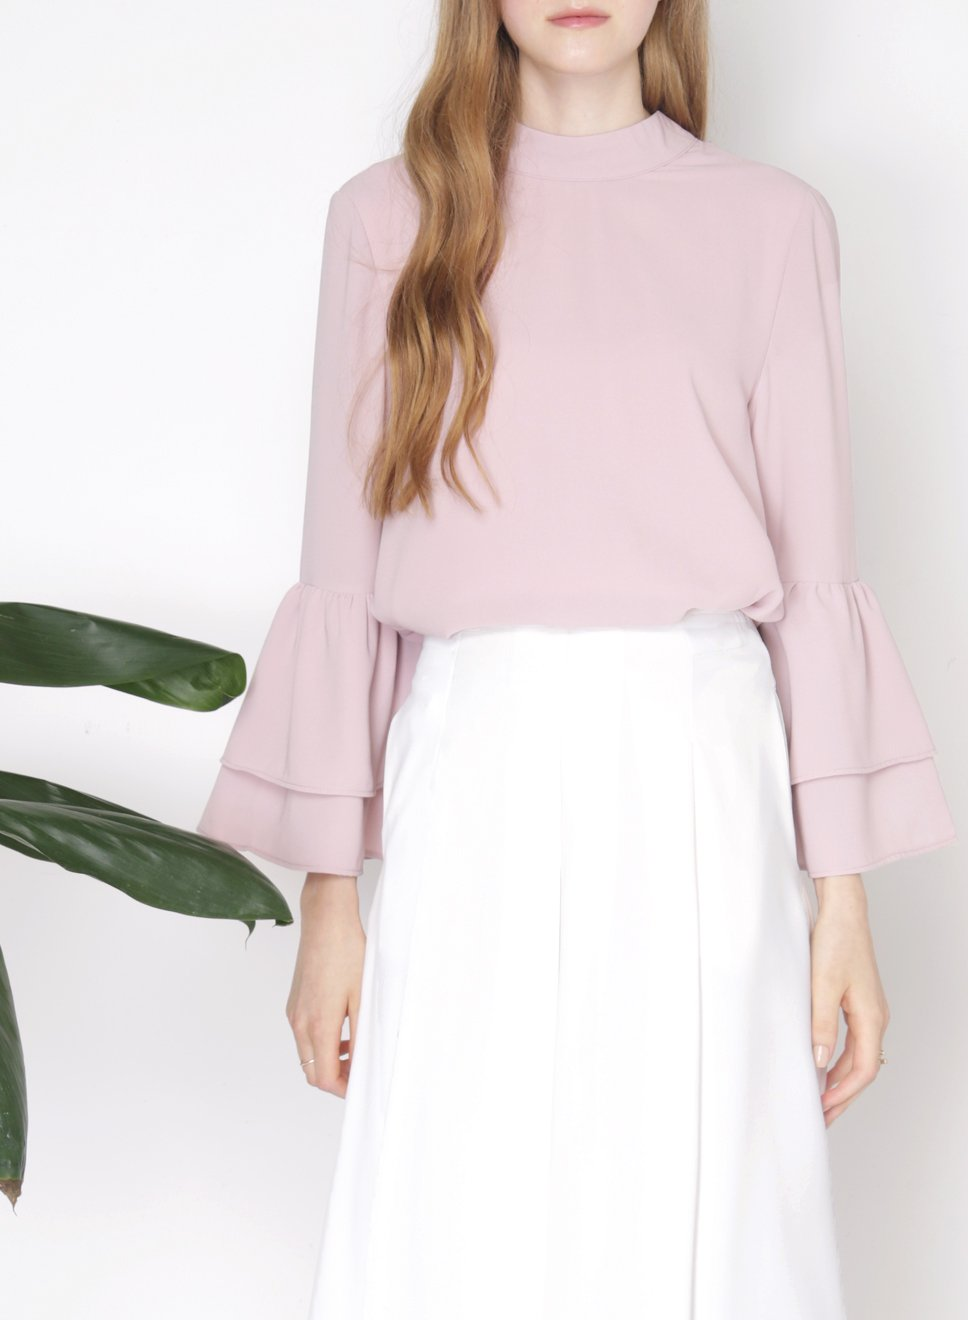 PONDER Double Tier Ruffle Sleeves Top (Mauve) - And Well Dressed